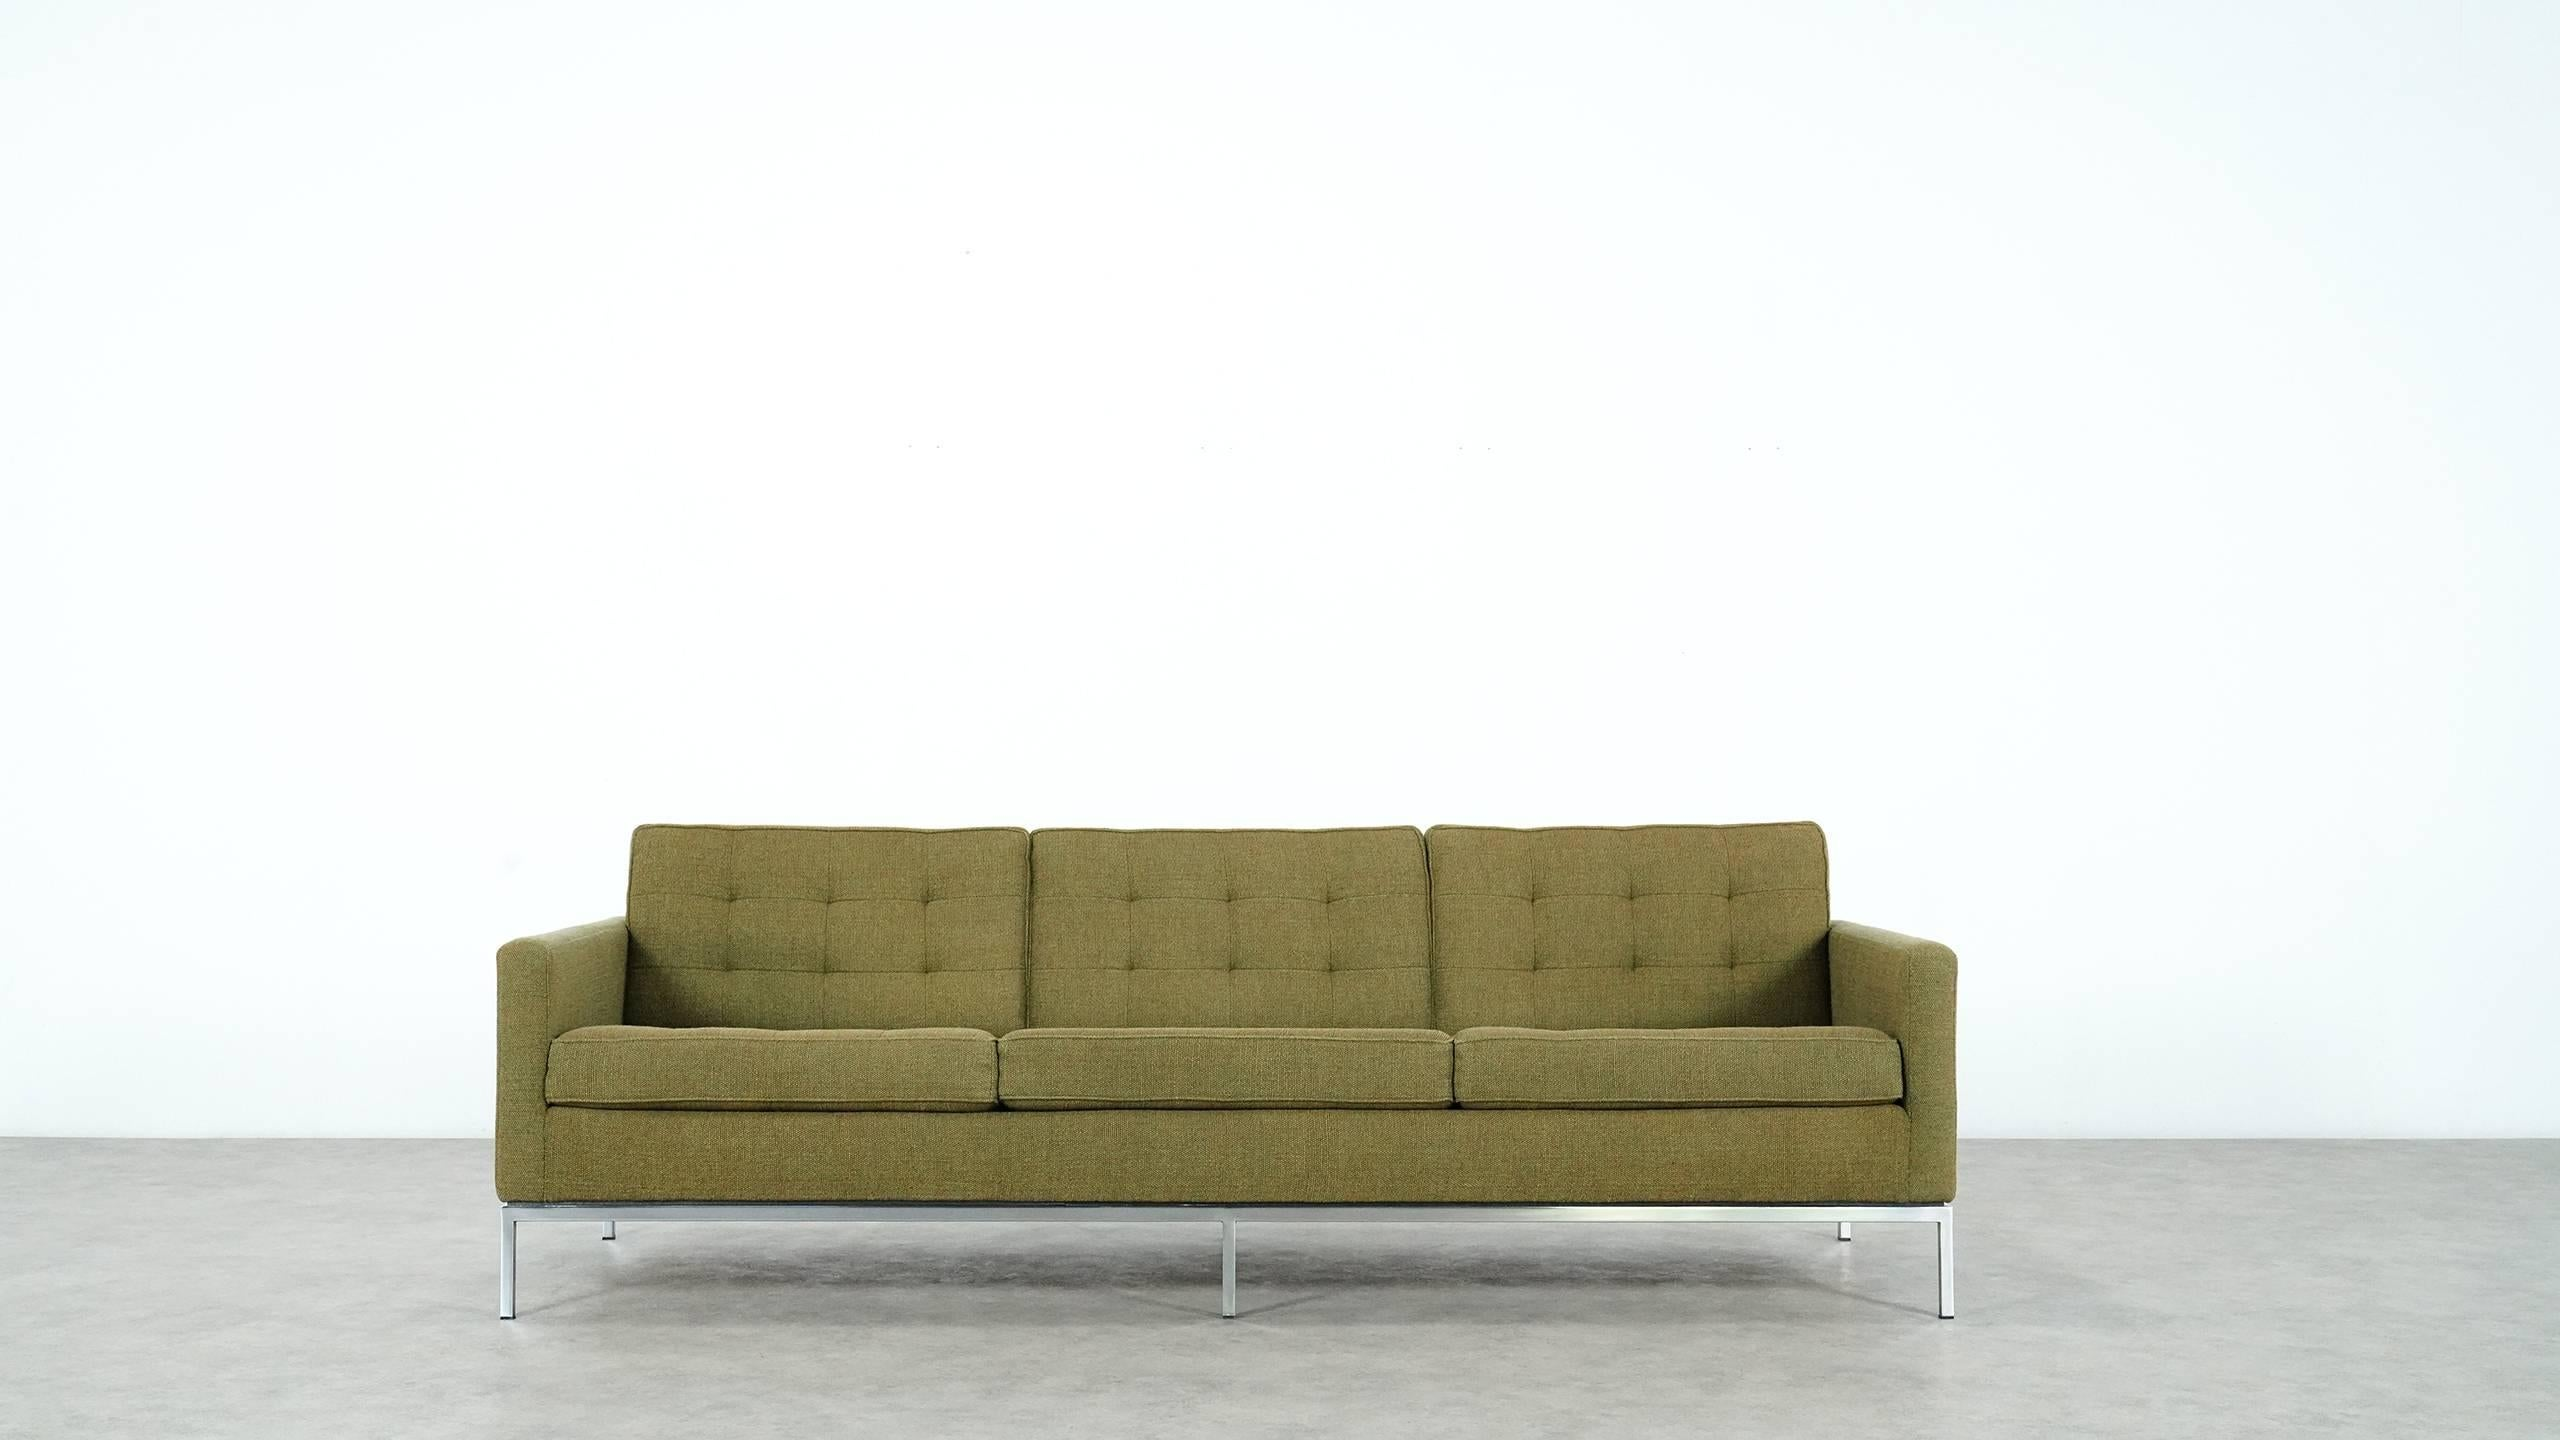 Florence Knoll Sessel Florence Knoll Sofa And Lounge Chair 1954 For Knoll International In Kvadrat